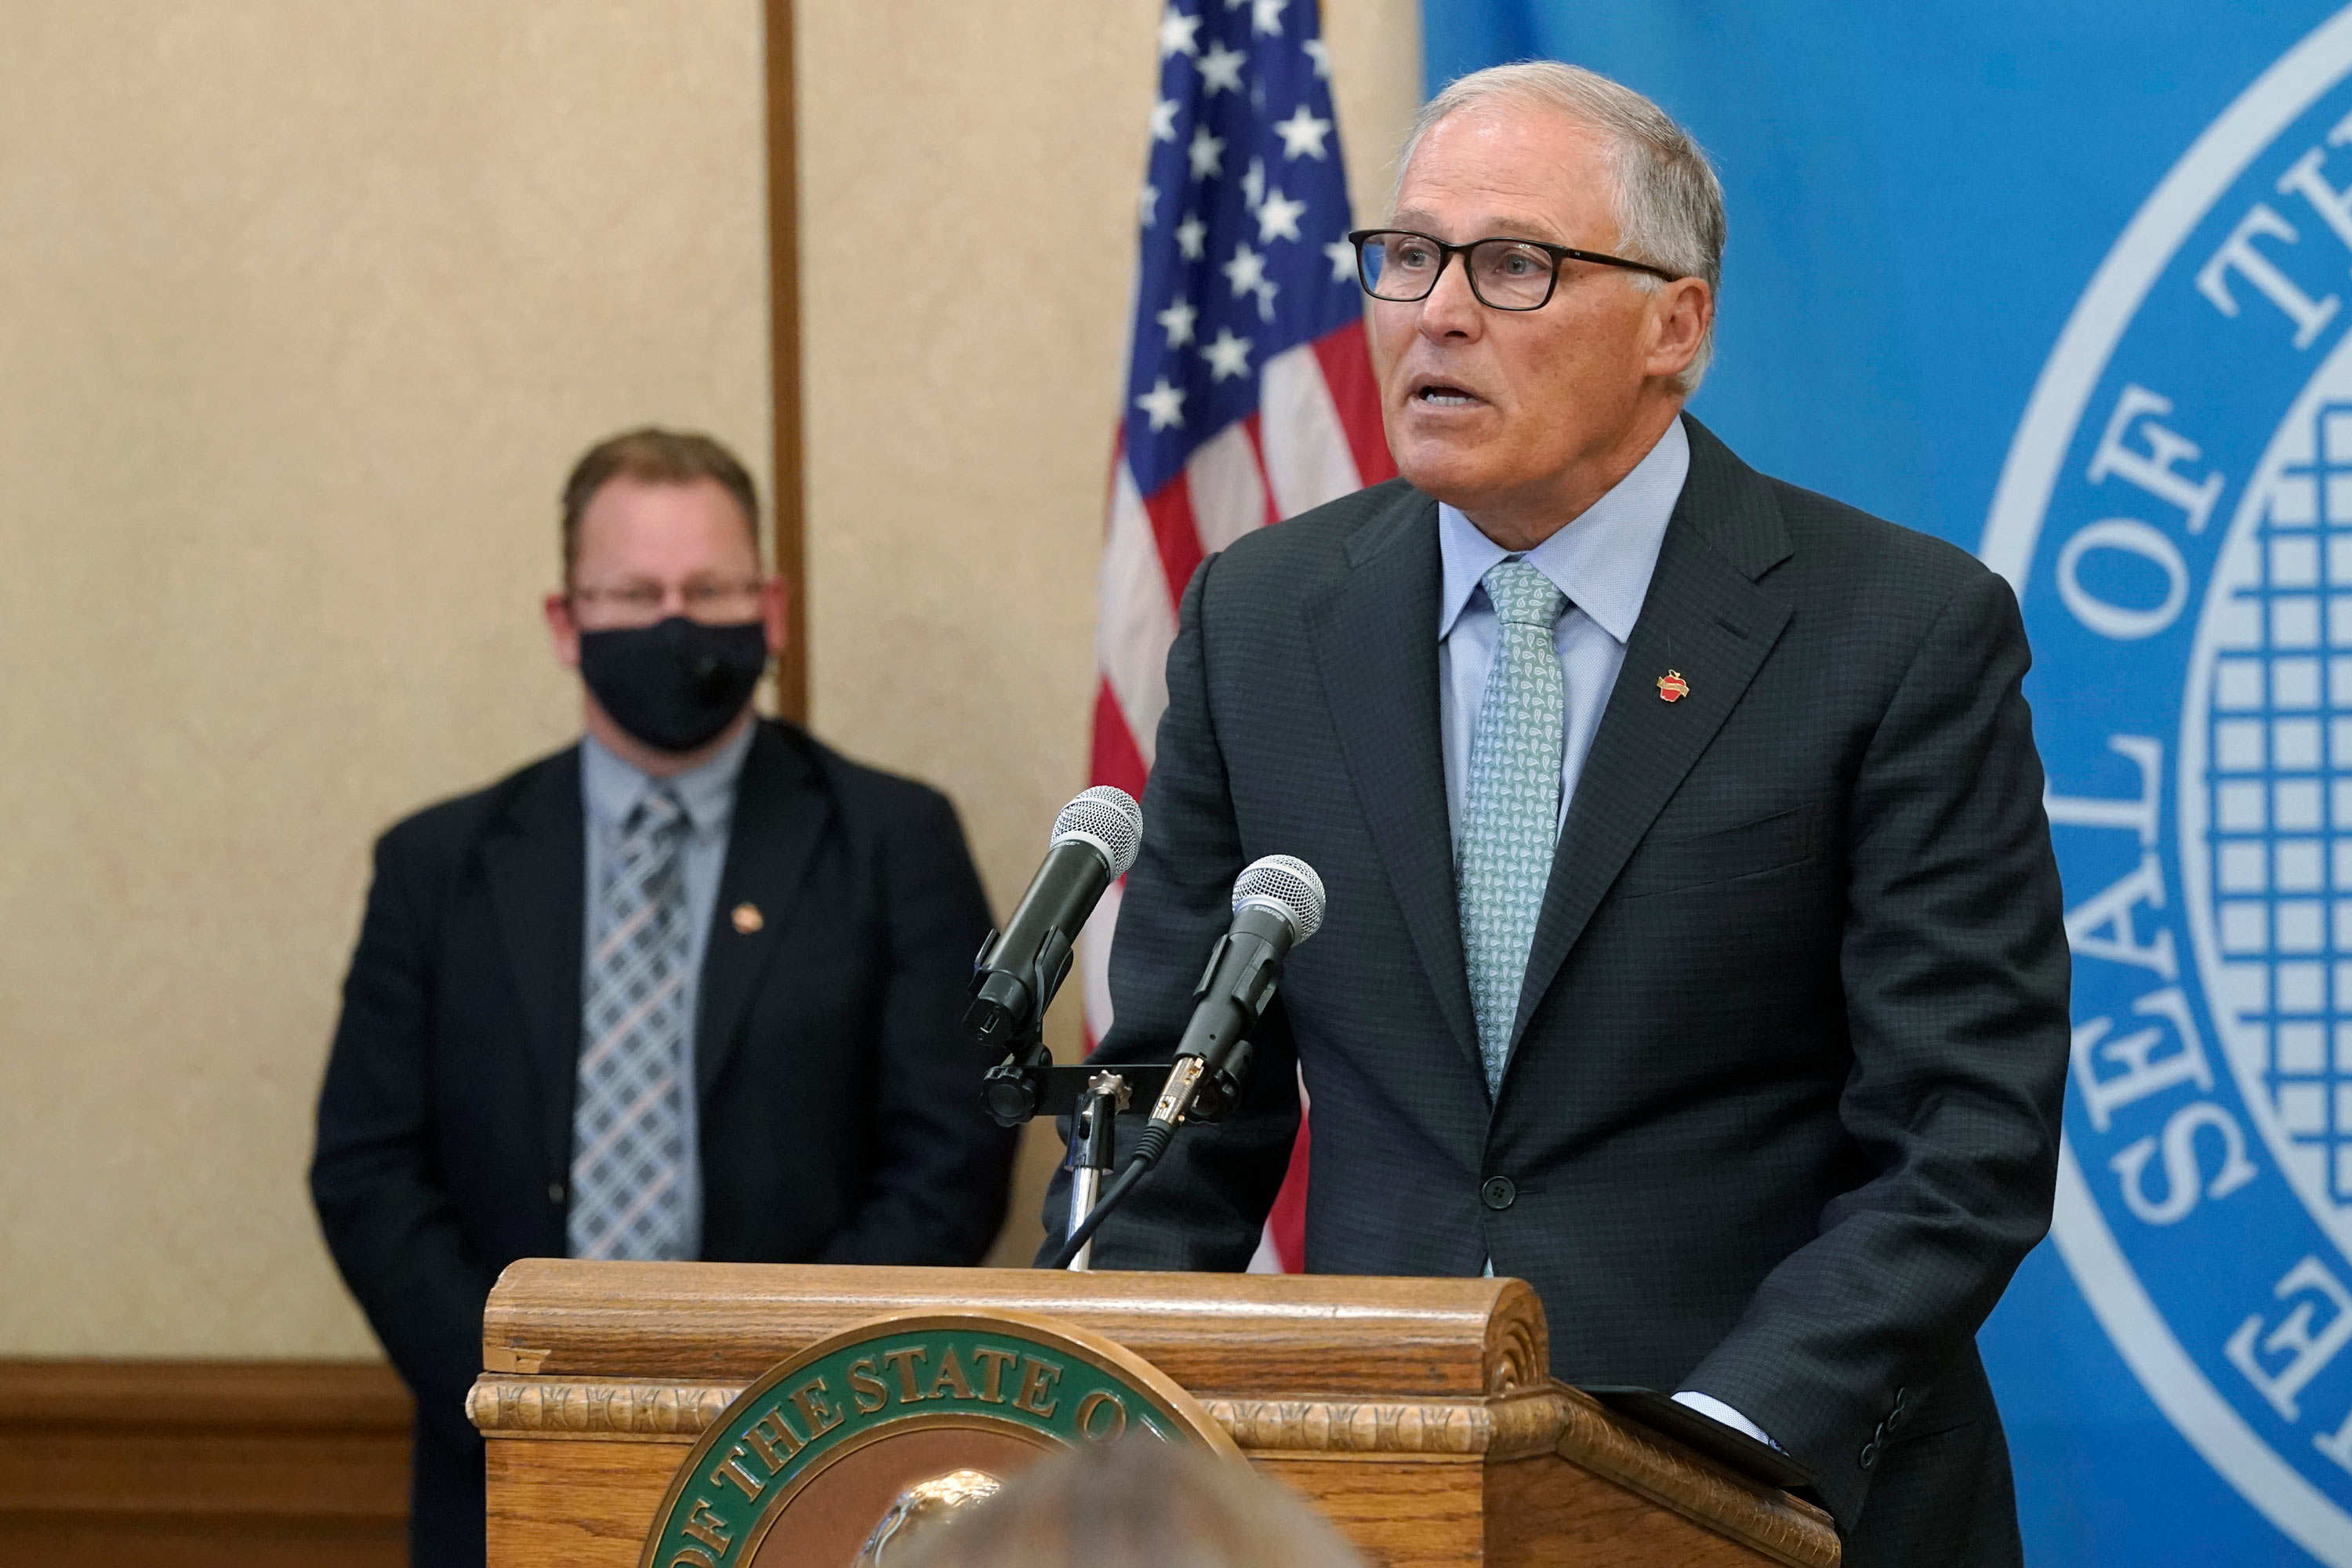 Washington Gov. Jay Inslee, right, speaks at a news conference on August 18 at the Capitol in Olympia, Washington.